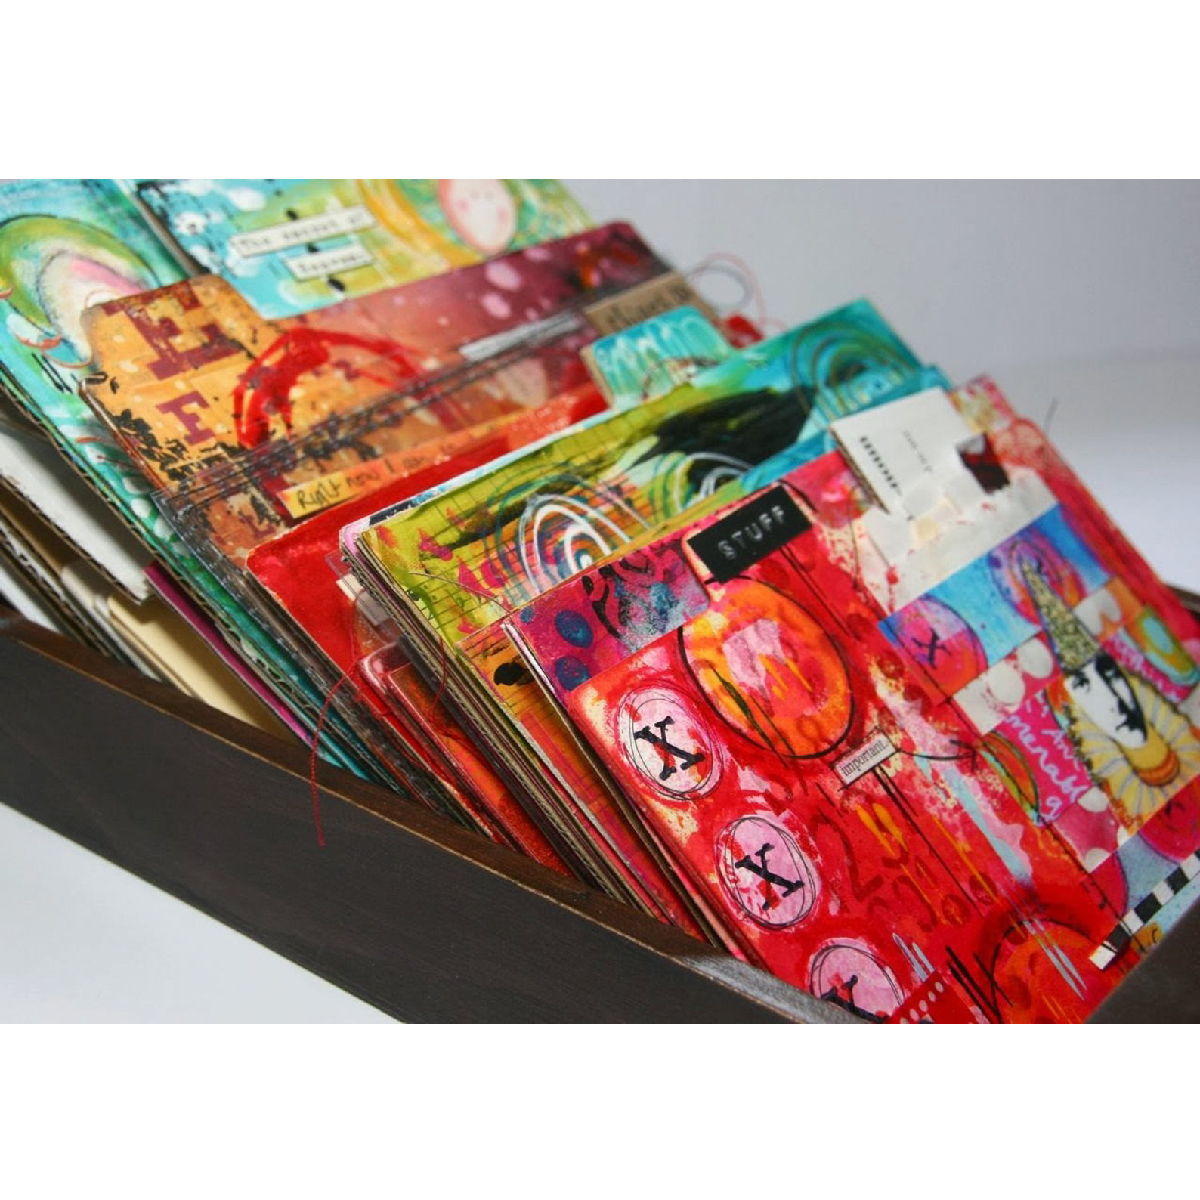 10 Gift Ideas for a Mixed Media Lovers - Journal Soup by Kate Crane. | VanillaArts.com